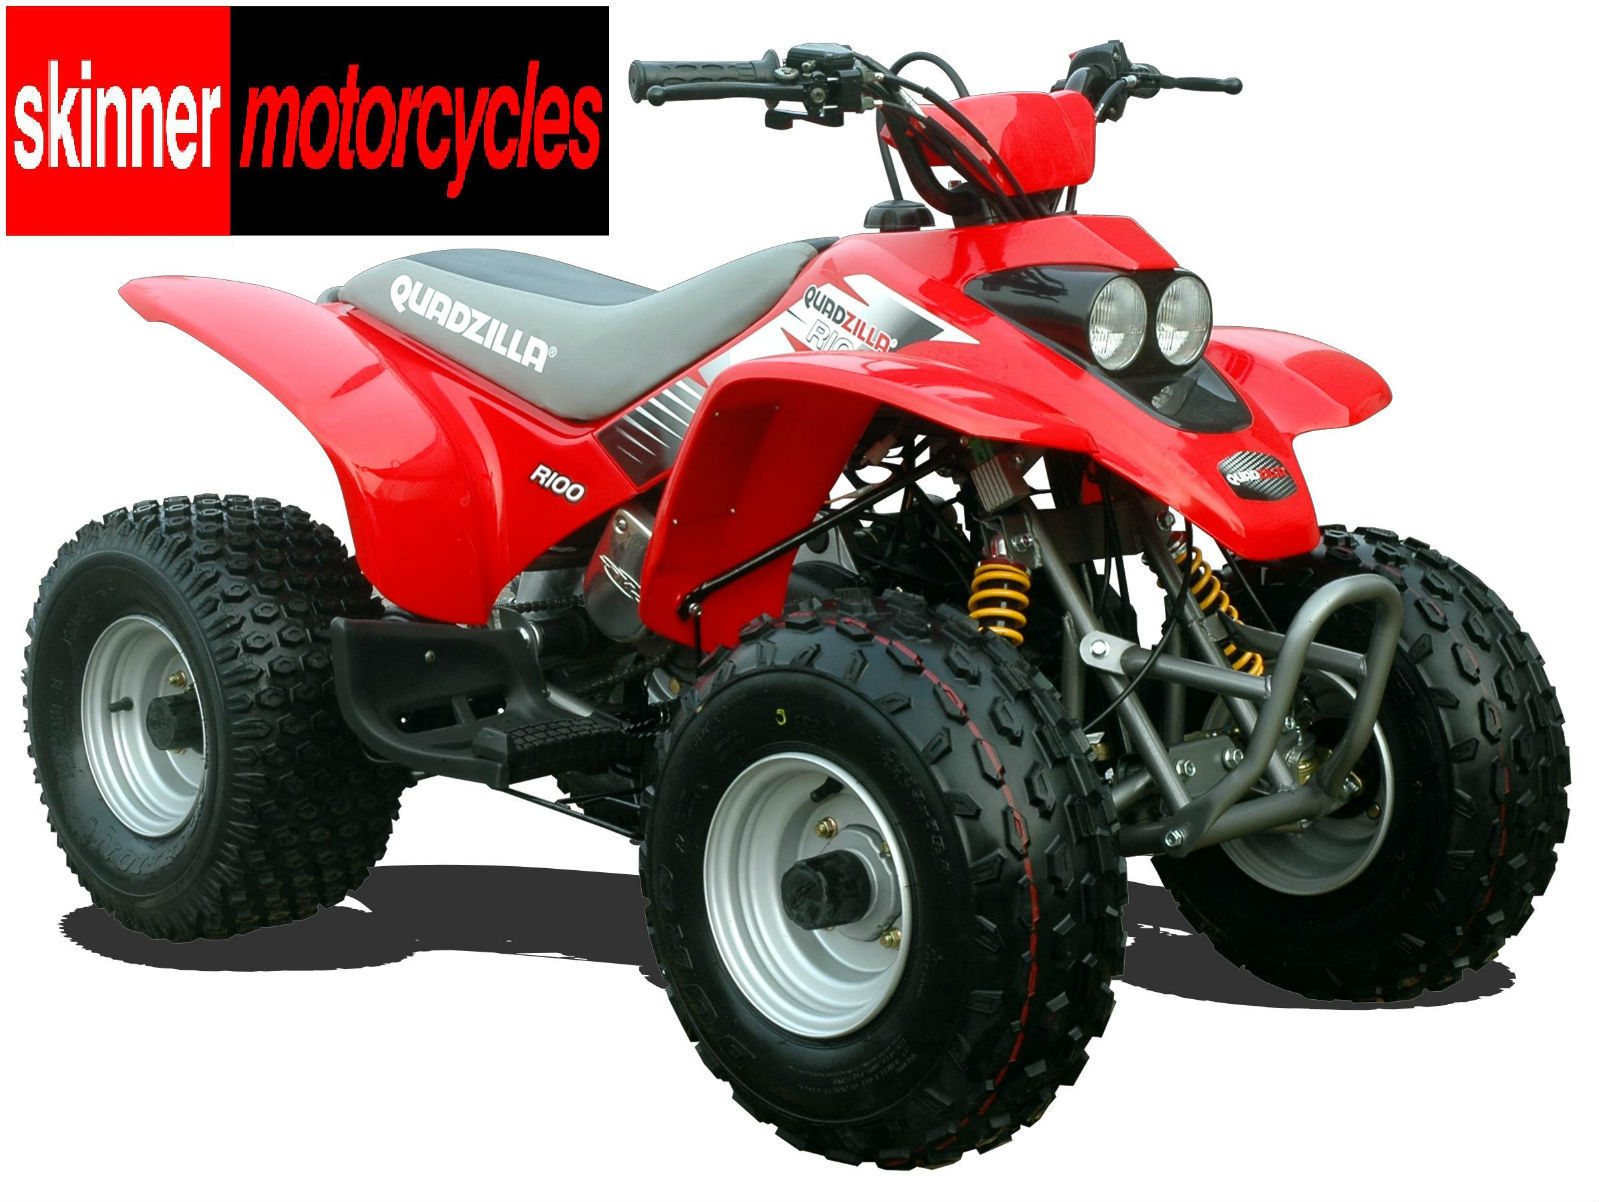 quadzilla r100 junior quad bike atv 100cc cvt auto with reverse buggy. Black Bedroom Furniture Sets. Home Design Ideas